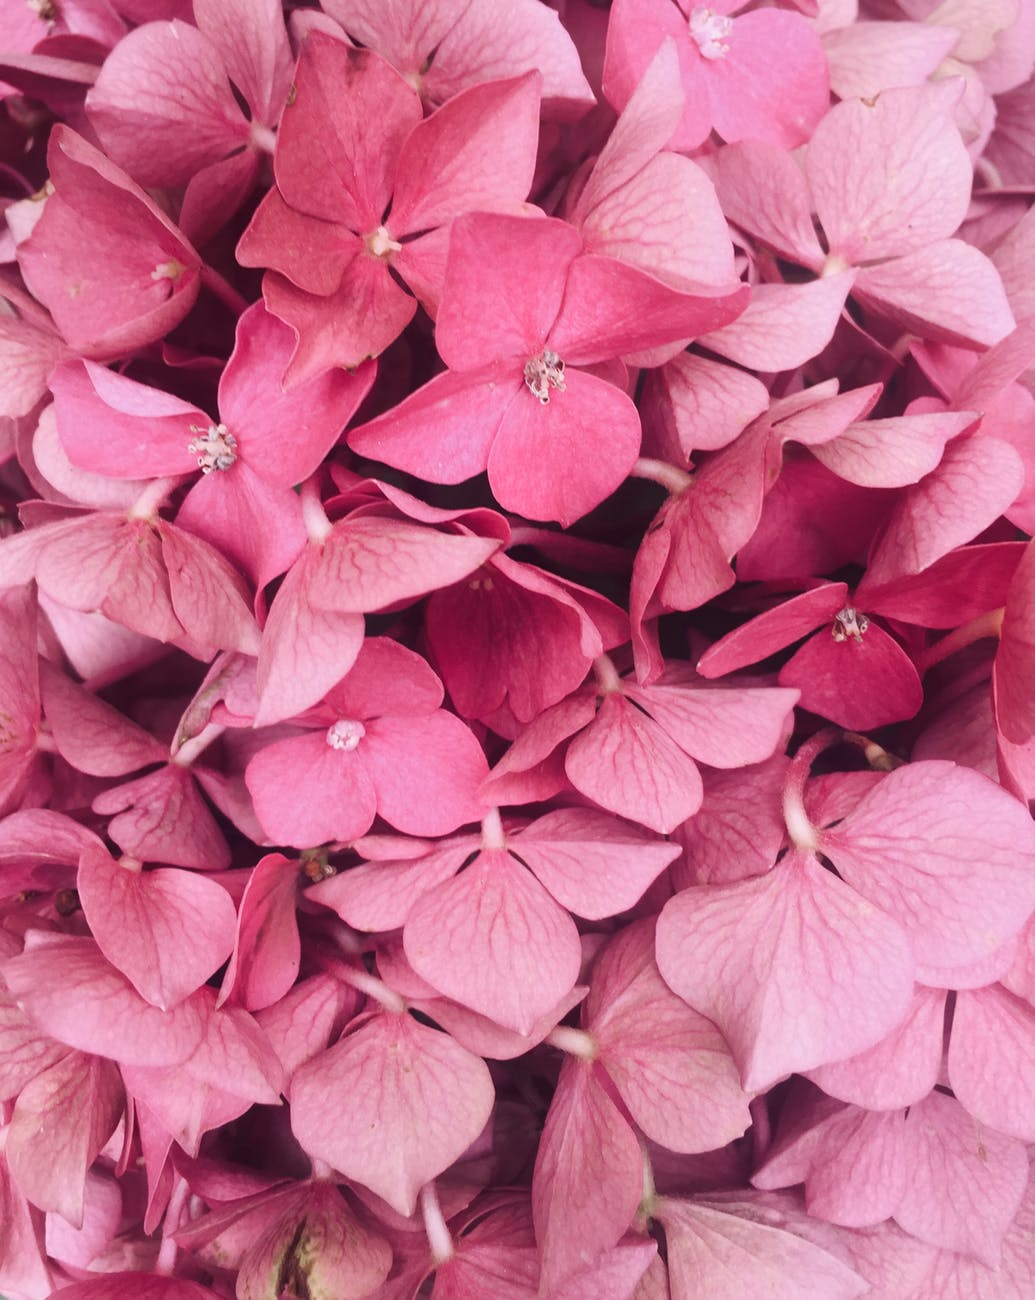 pink petaled flowers close up photography